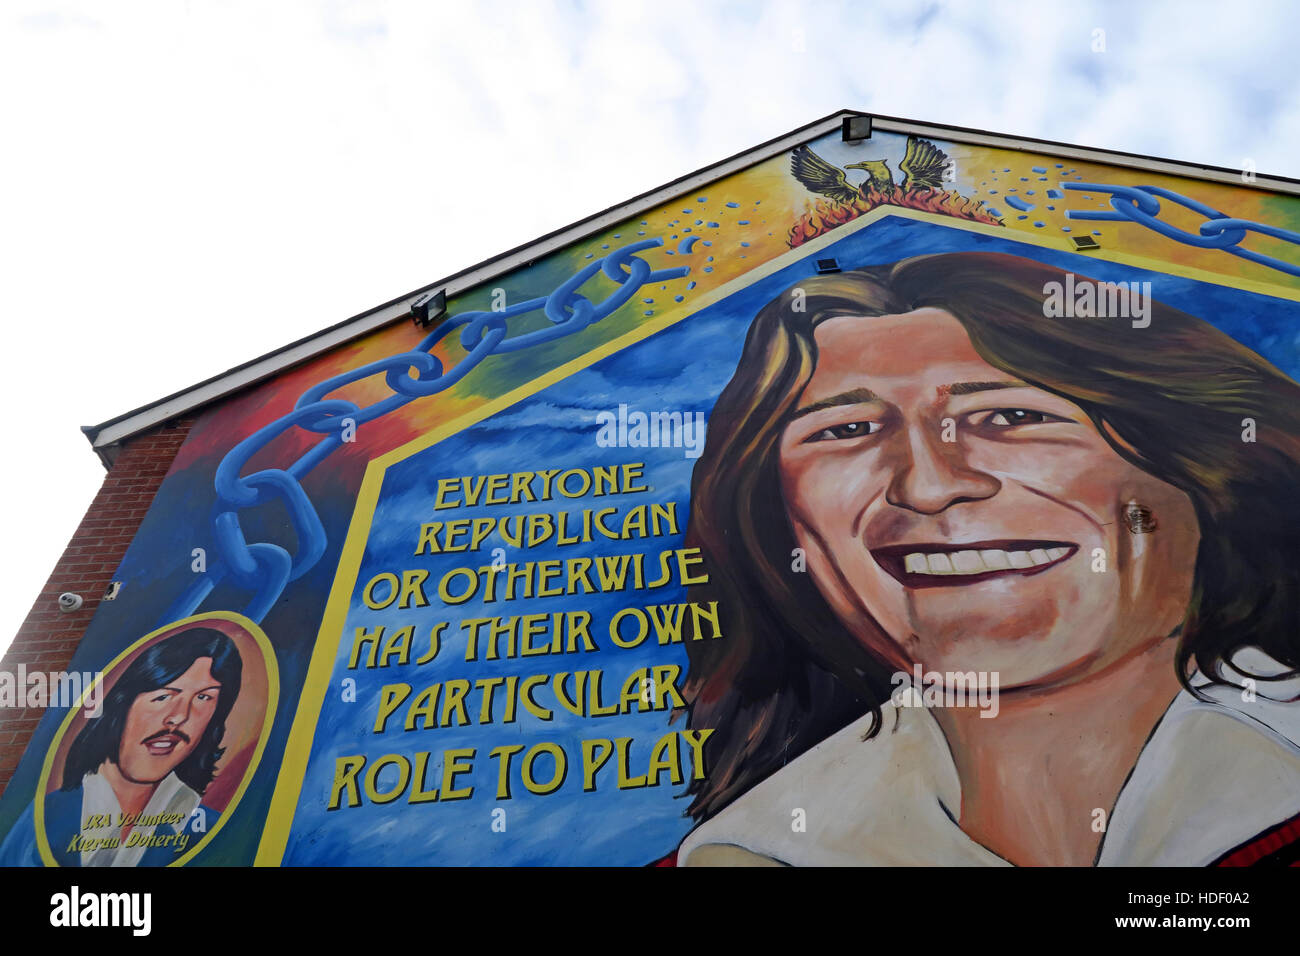 Belfast Falls Rd Republican Mural- Everyone in a revolution,has their part to play Stock Photo